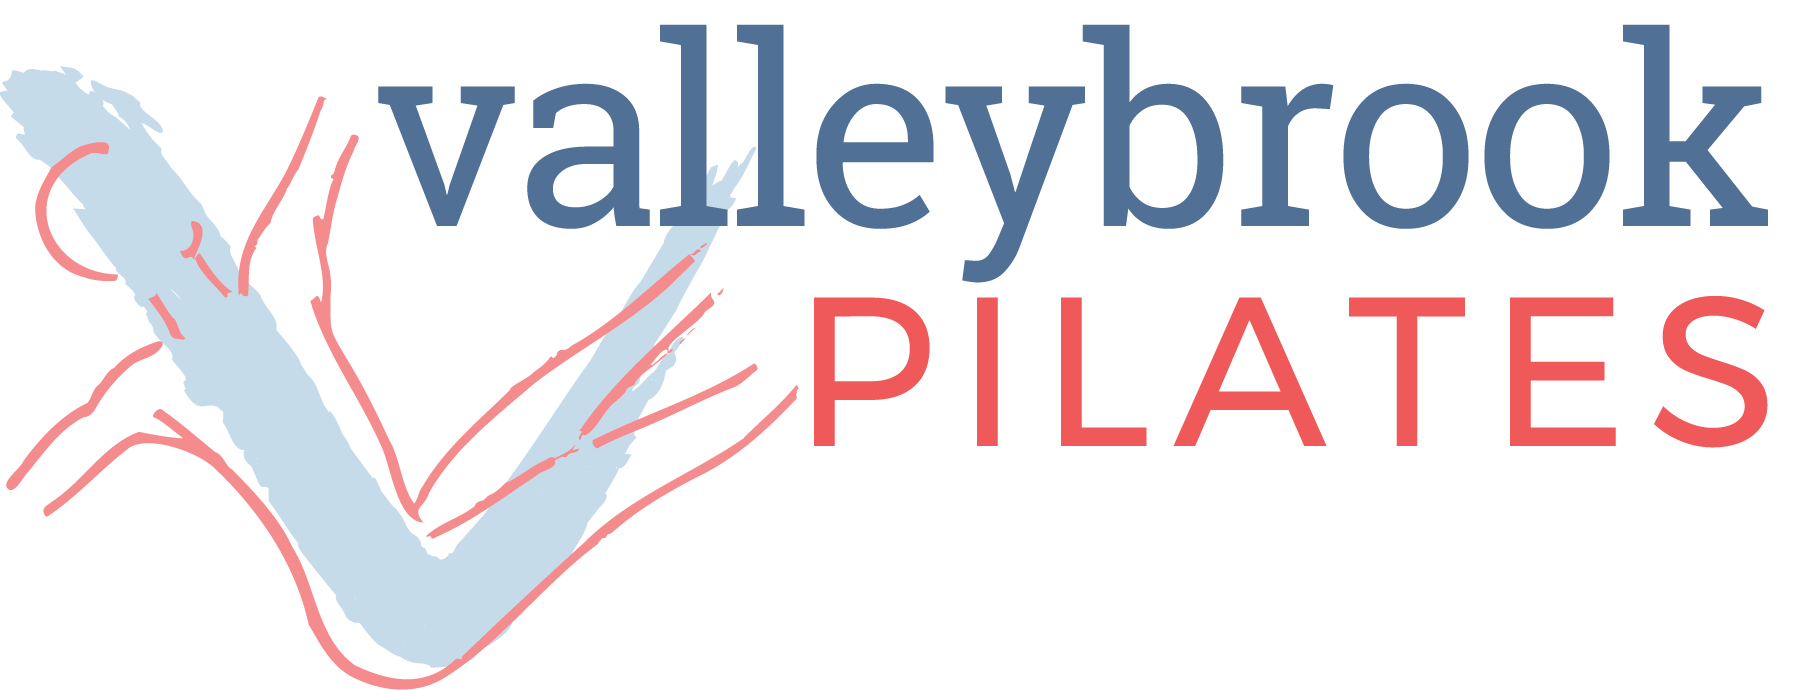 Valleybrook Pilates & Fitness McMurray PA